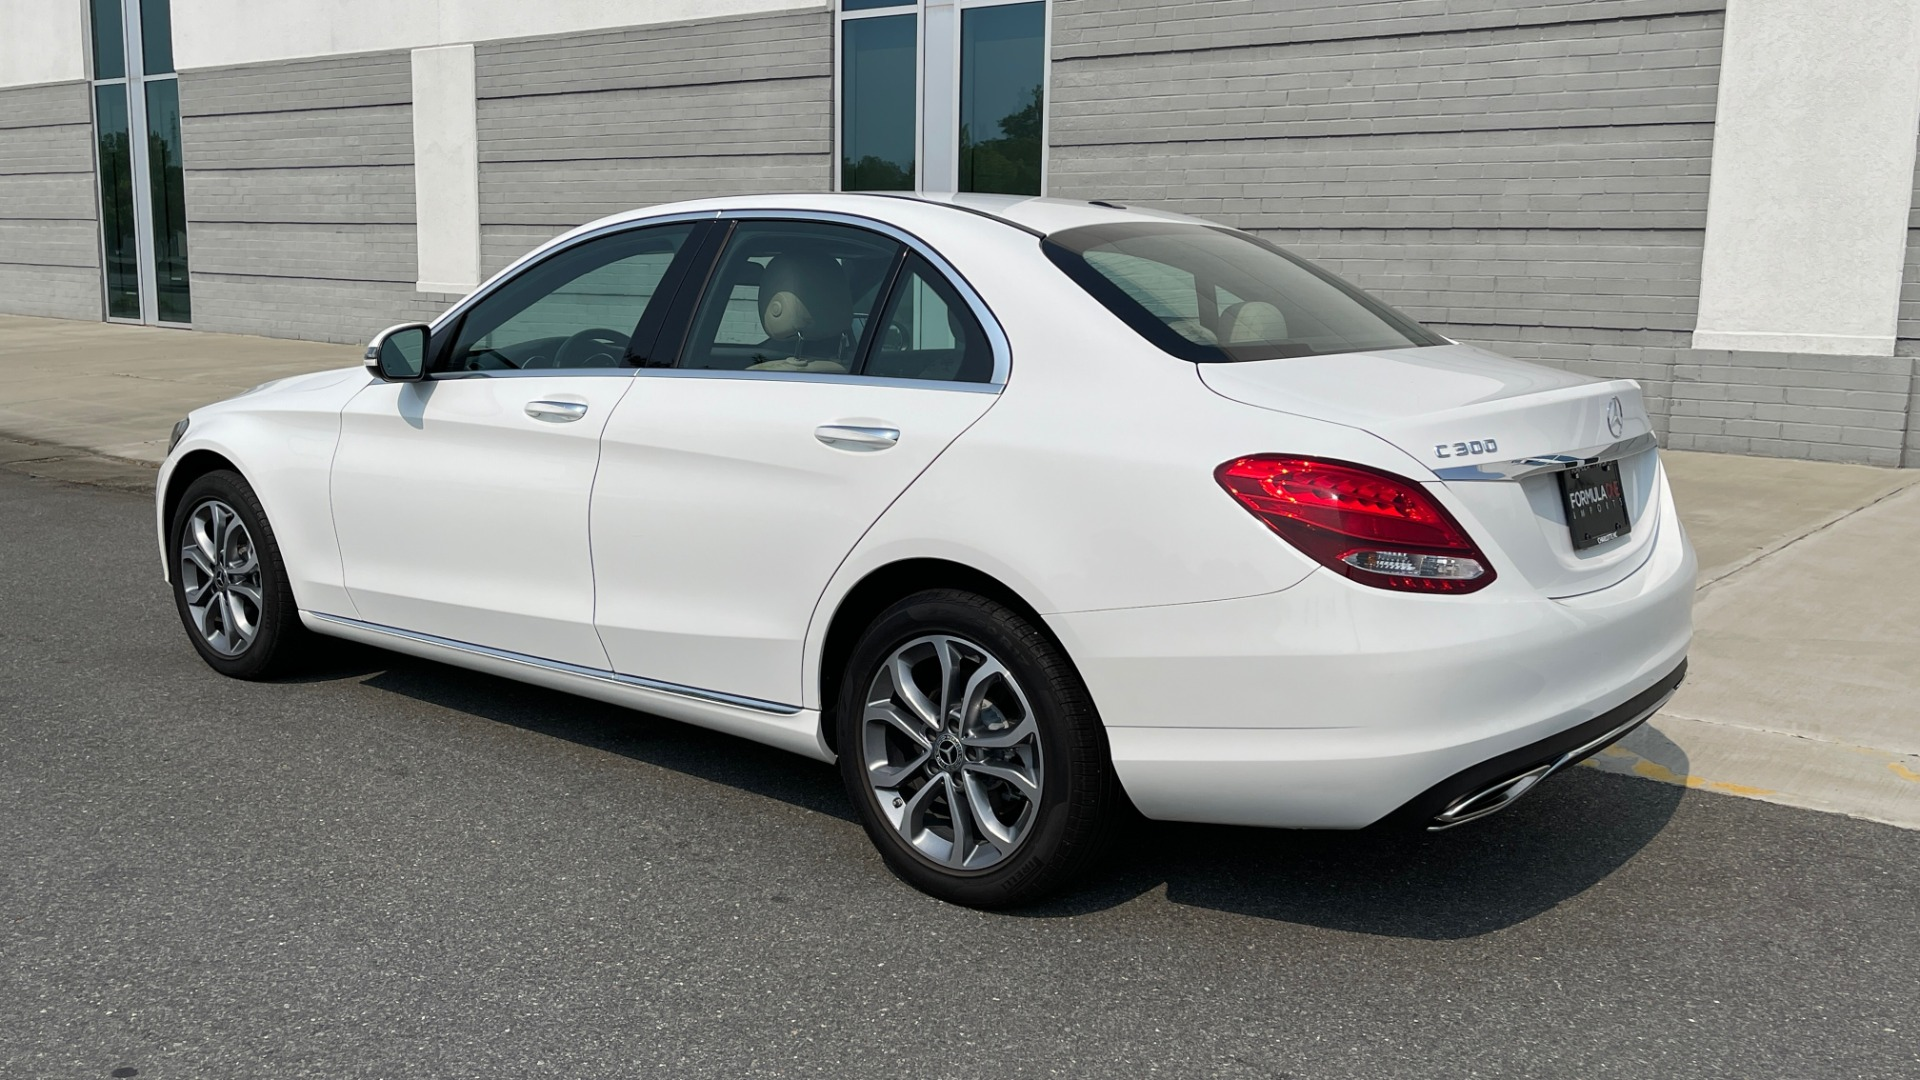 Used 2018 Mercedes-Benz C-Class C 300 4MATIC / PREMIUM / BURMESTER / HTD STS / SUNROOF / REARVIEW for sale $33,995 at Formula Imports in Charlotte NC 28227 5